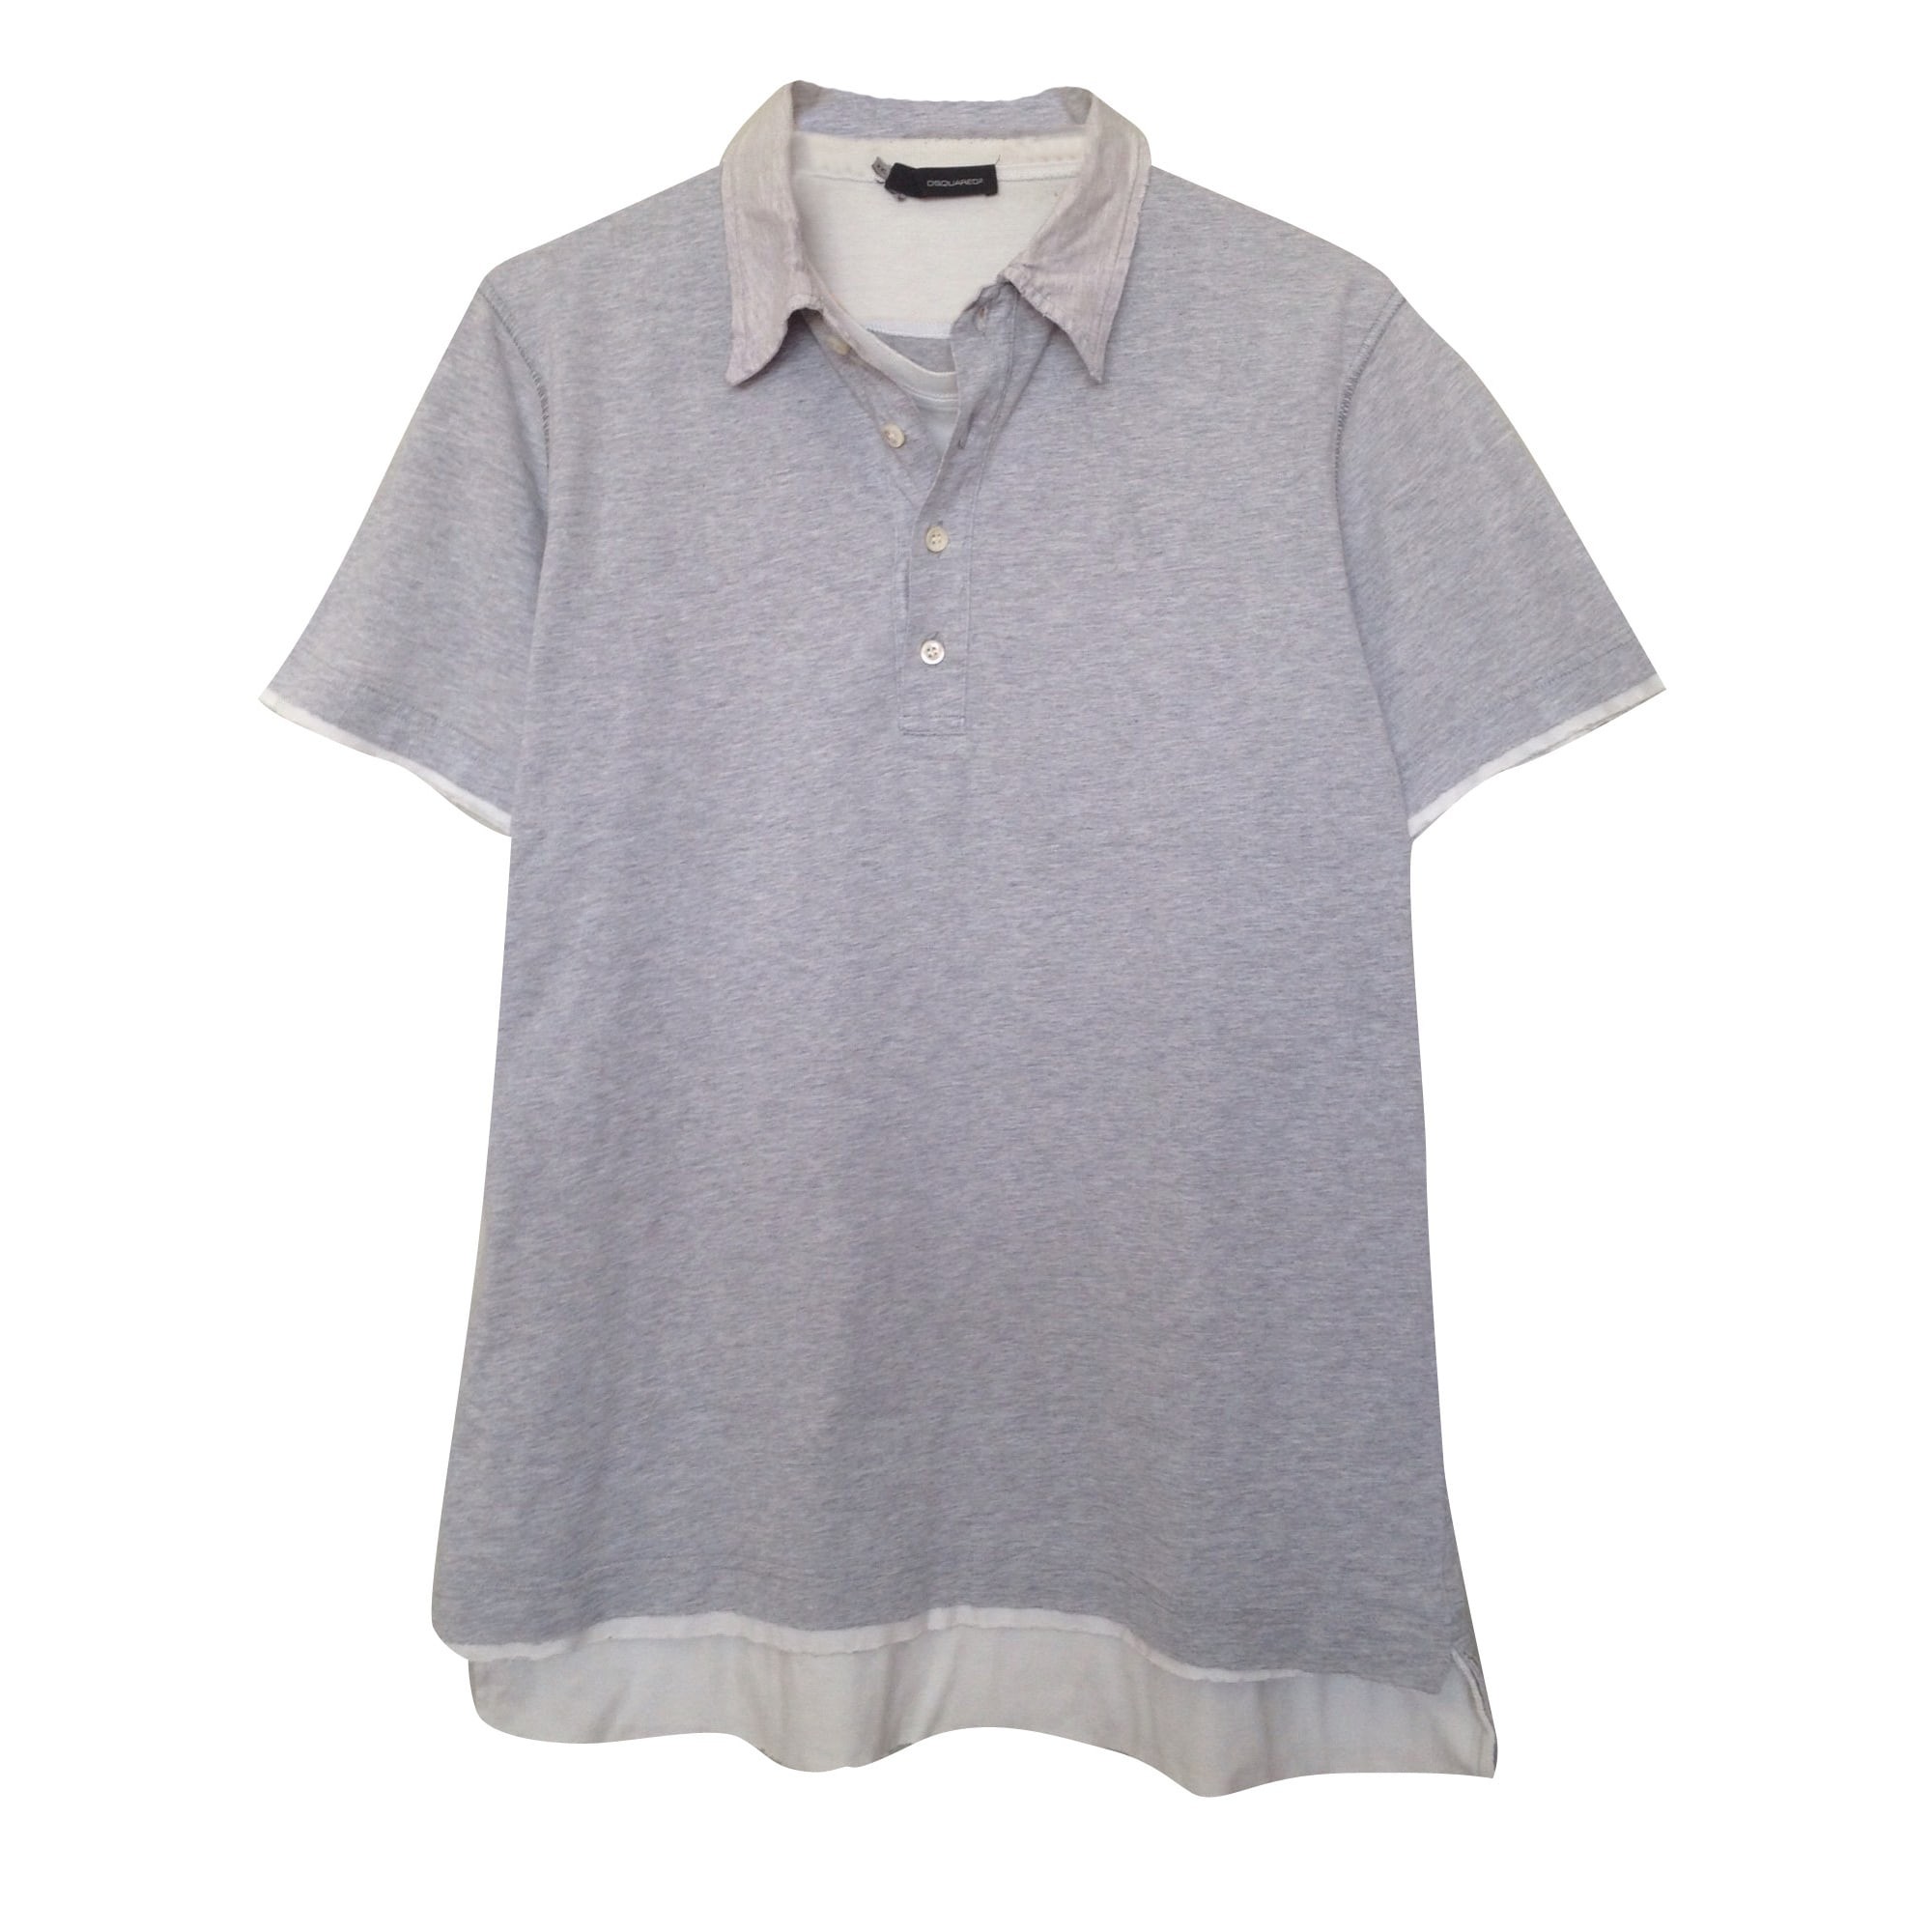 Polo DSQUARED2 Gris, anthracite